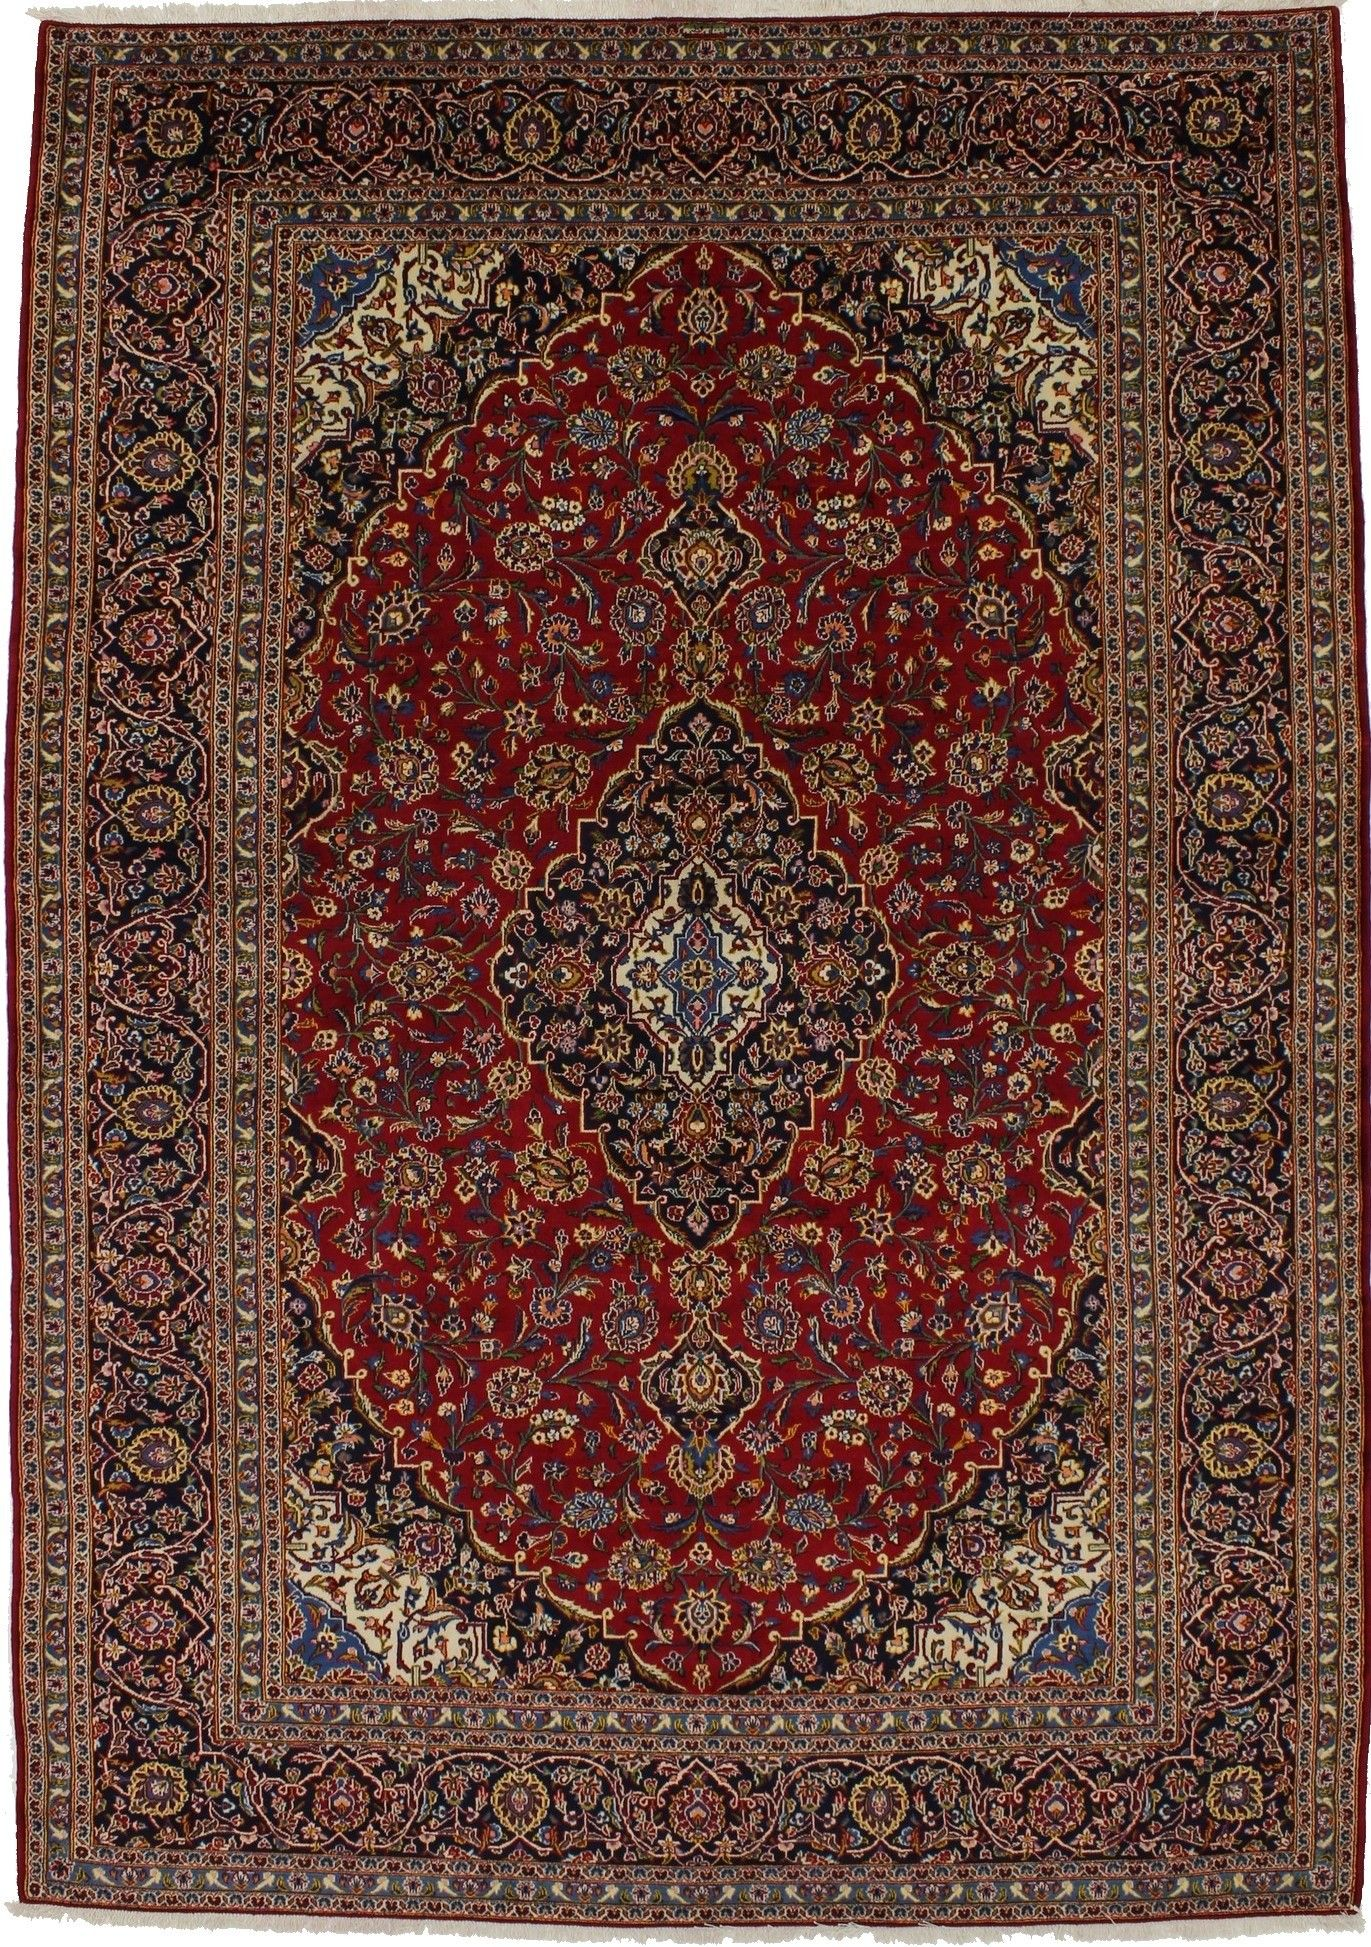 Antique Persian Rugs Beautiful Hand Knotted Extra Large Kashan Persian Rug Oriental Area Carpet 10x14 Magic Rugs Persian Rug 9x12 Area Rugs Clearance Rugs